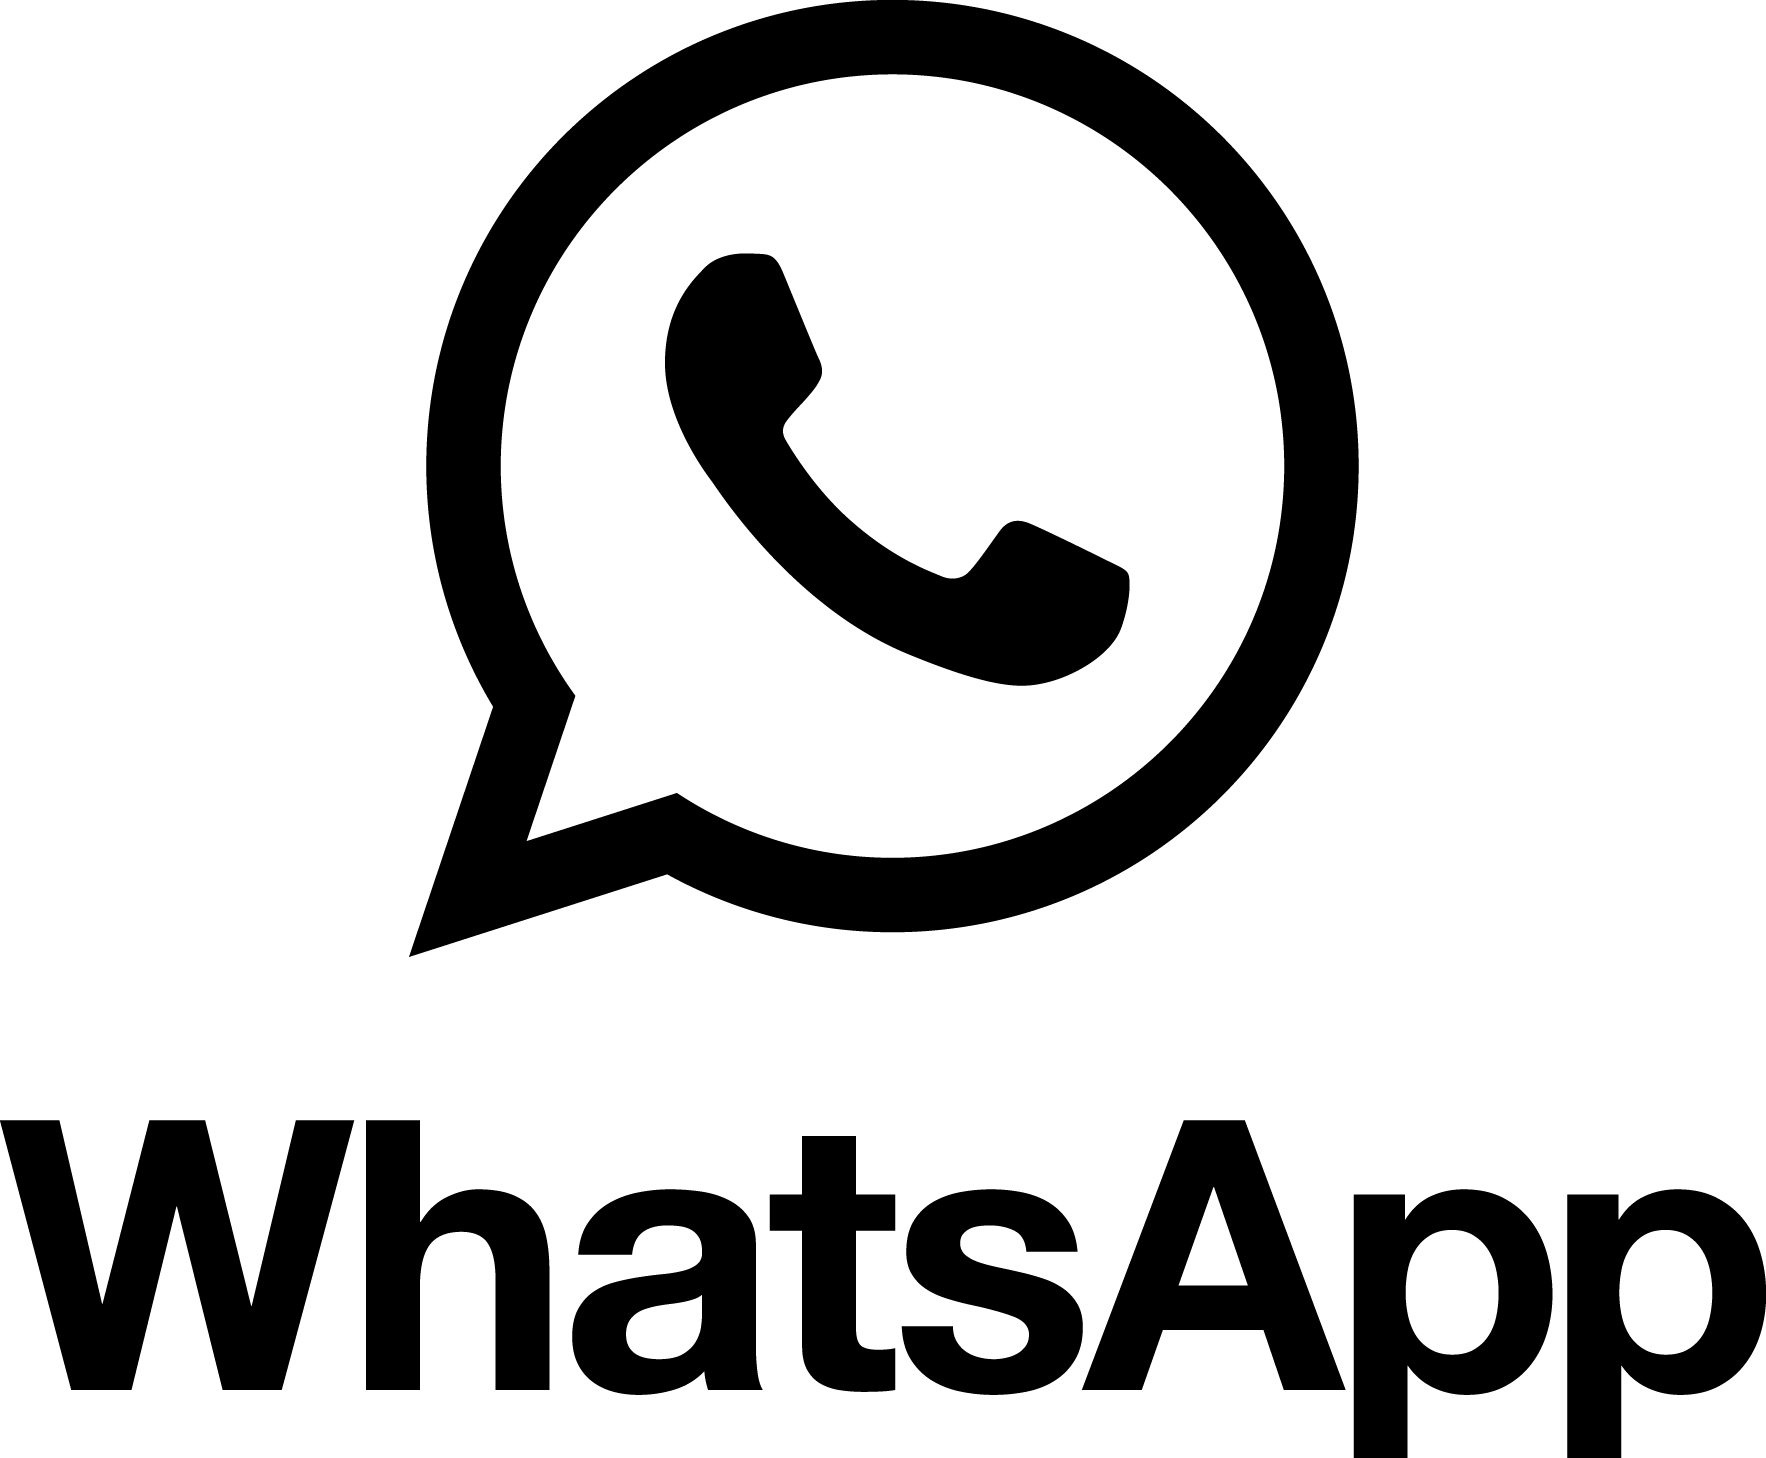 WhatsApp Logo - Whatsapp Clipart